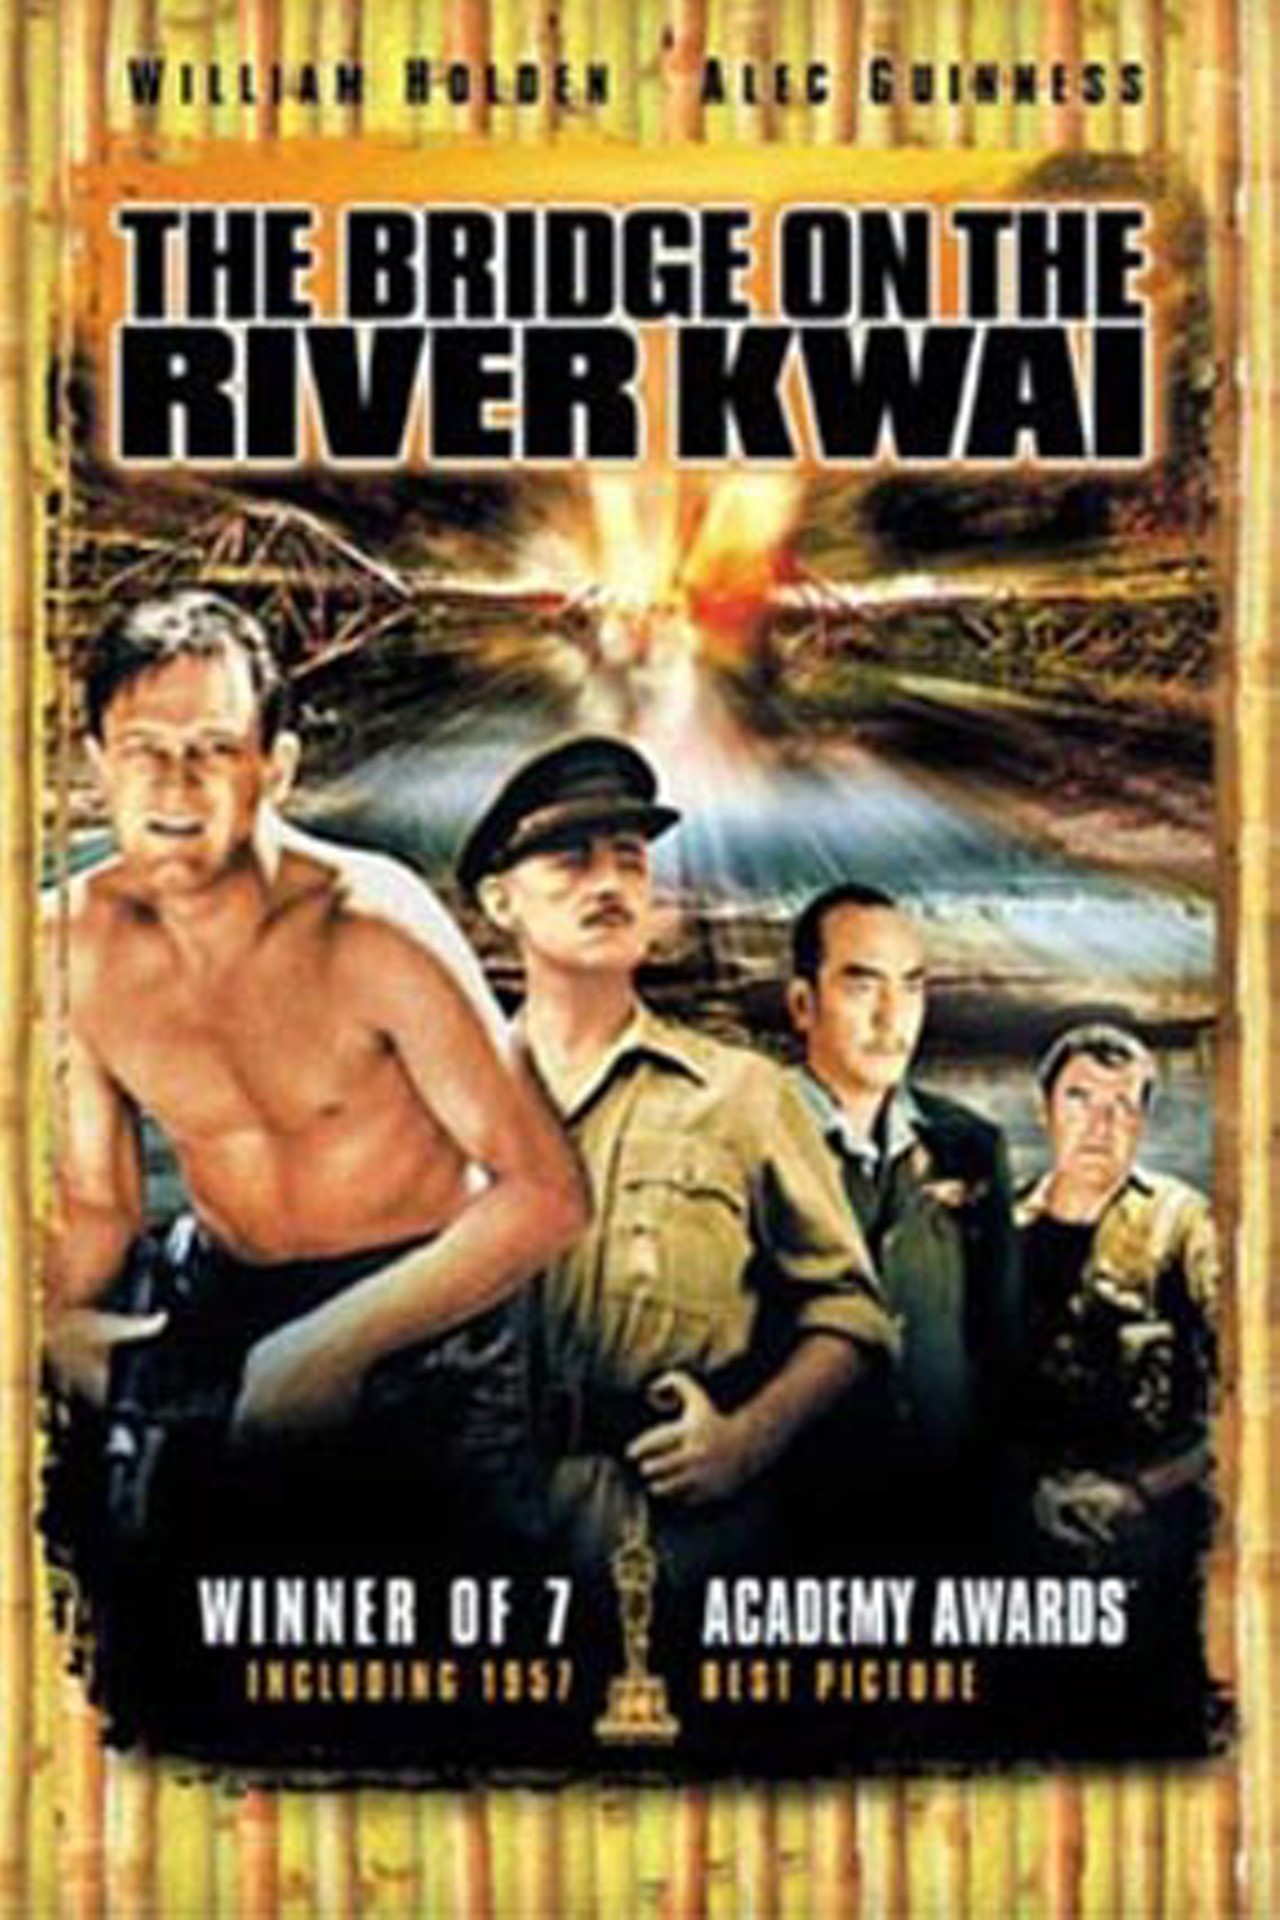 The Bridge On The River Kwai Chicago Reader